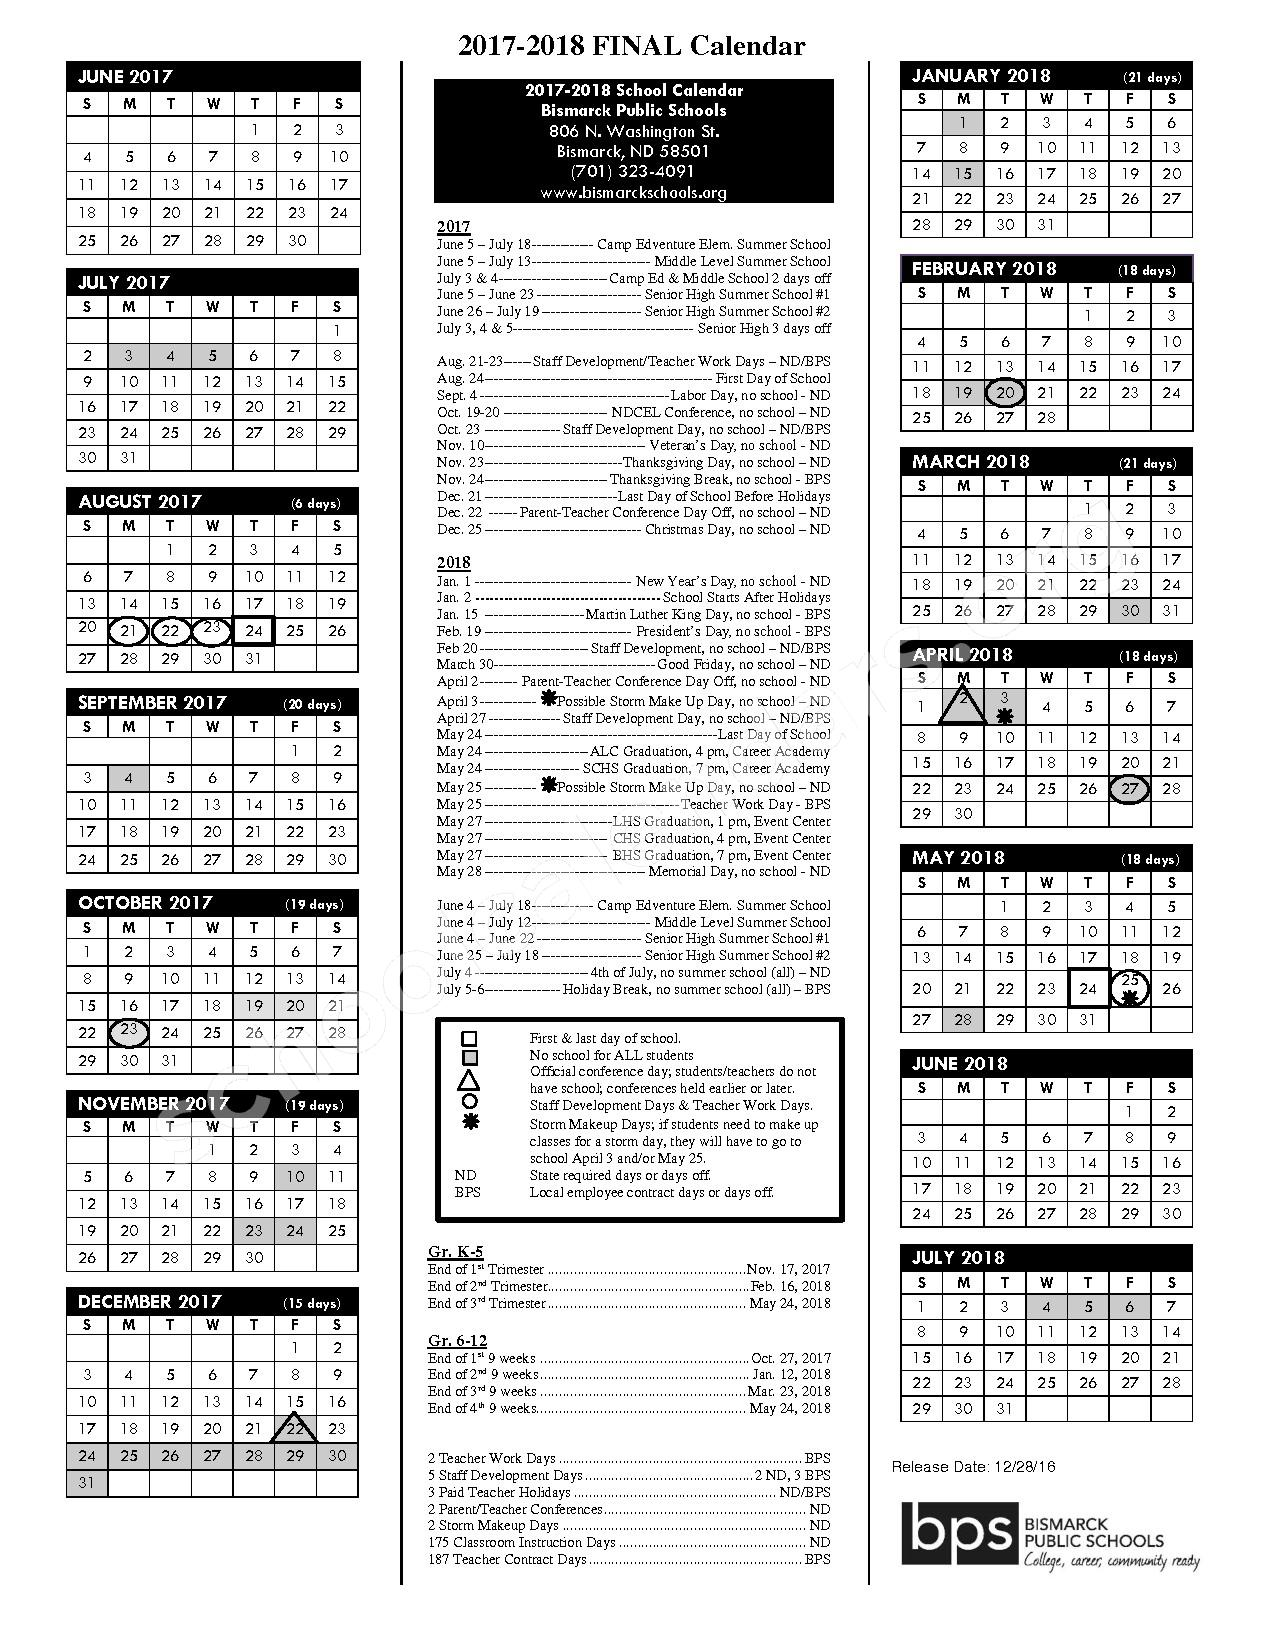 2017 - 2018 school calendar – Simle Middle School – page 1